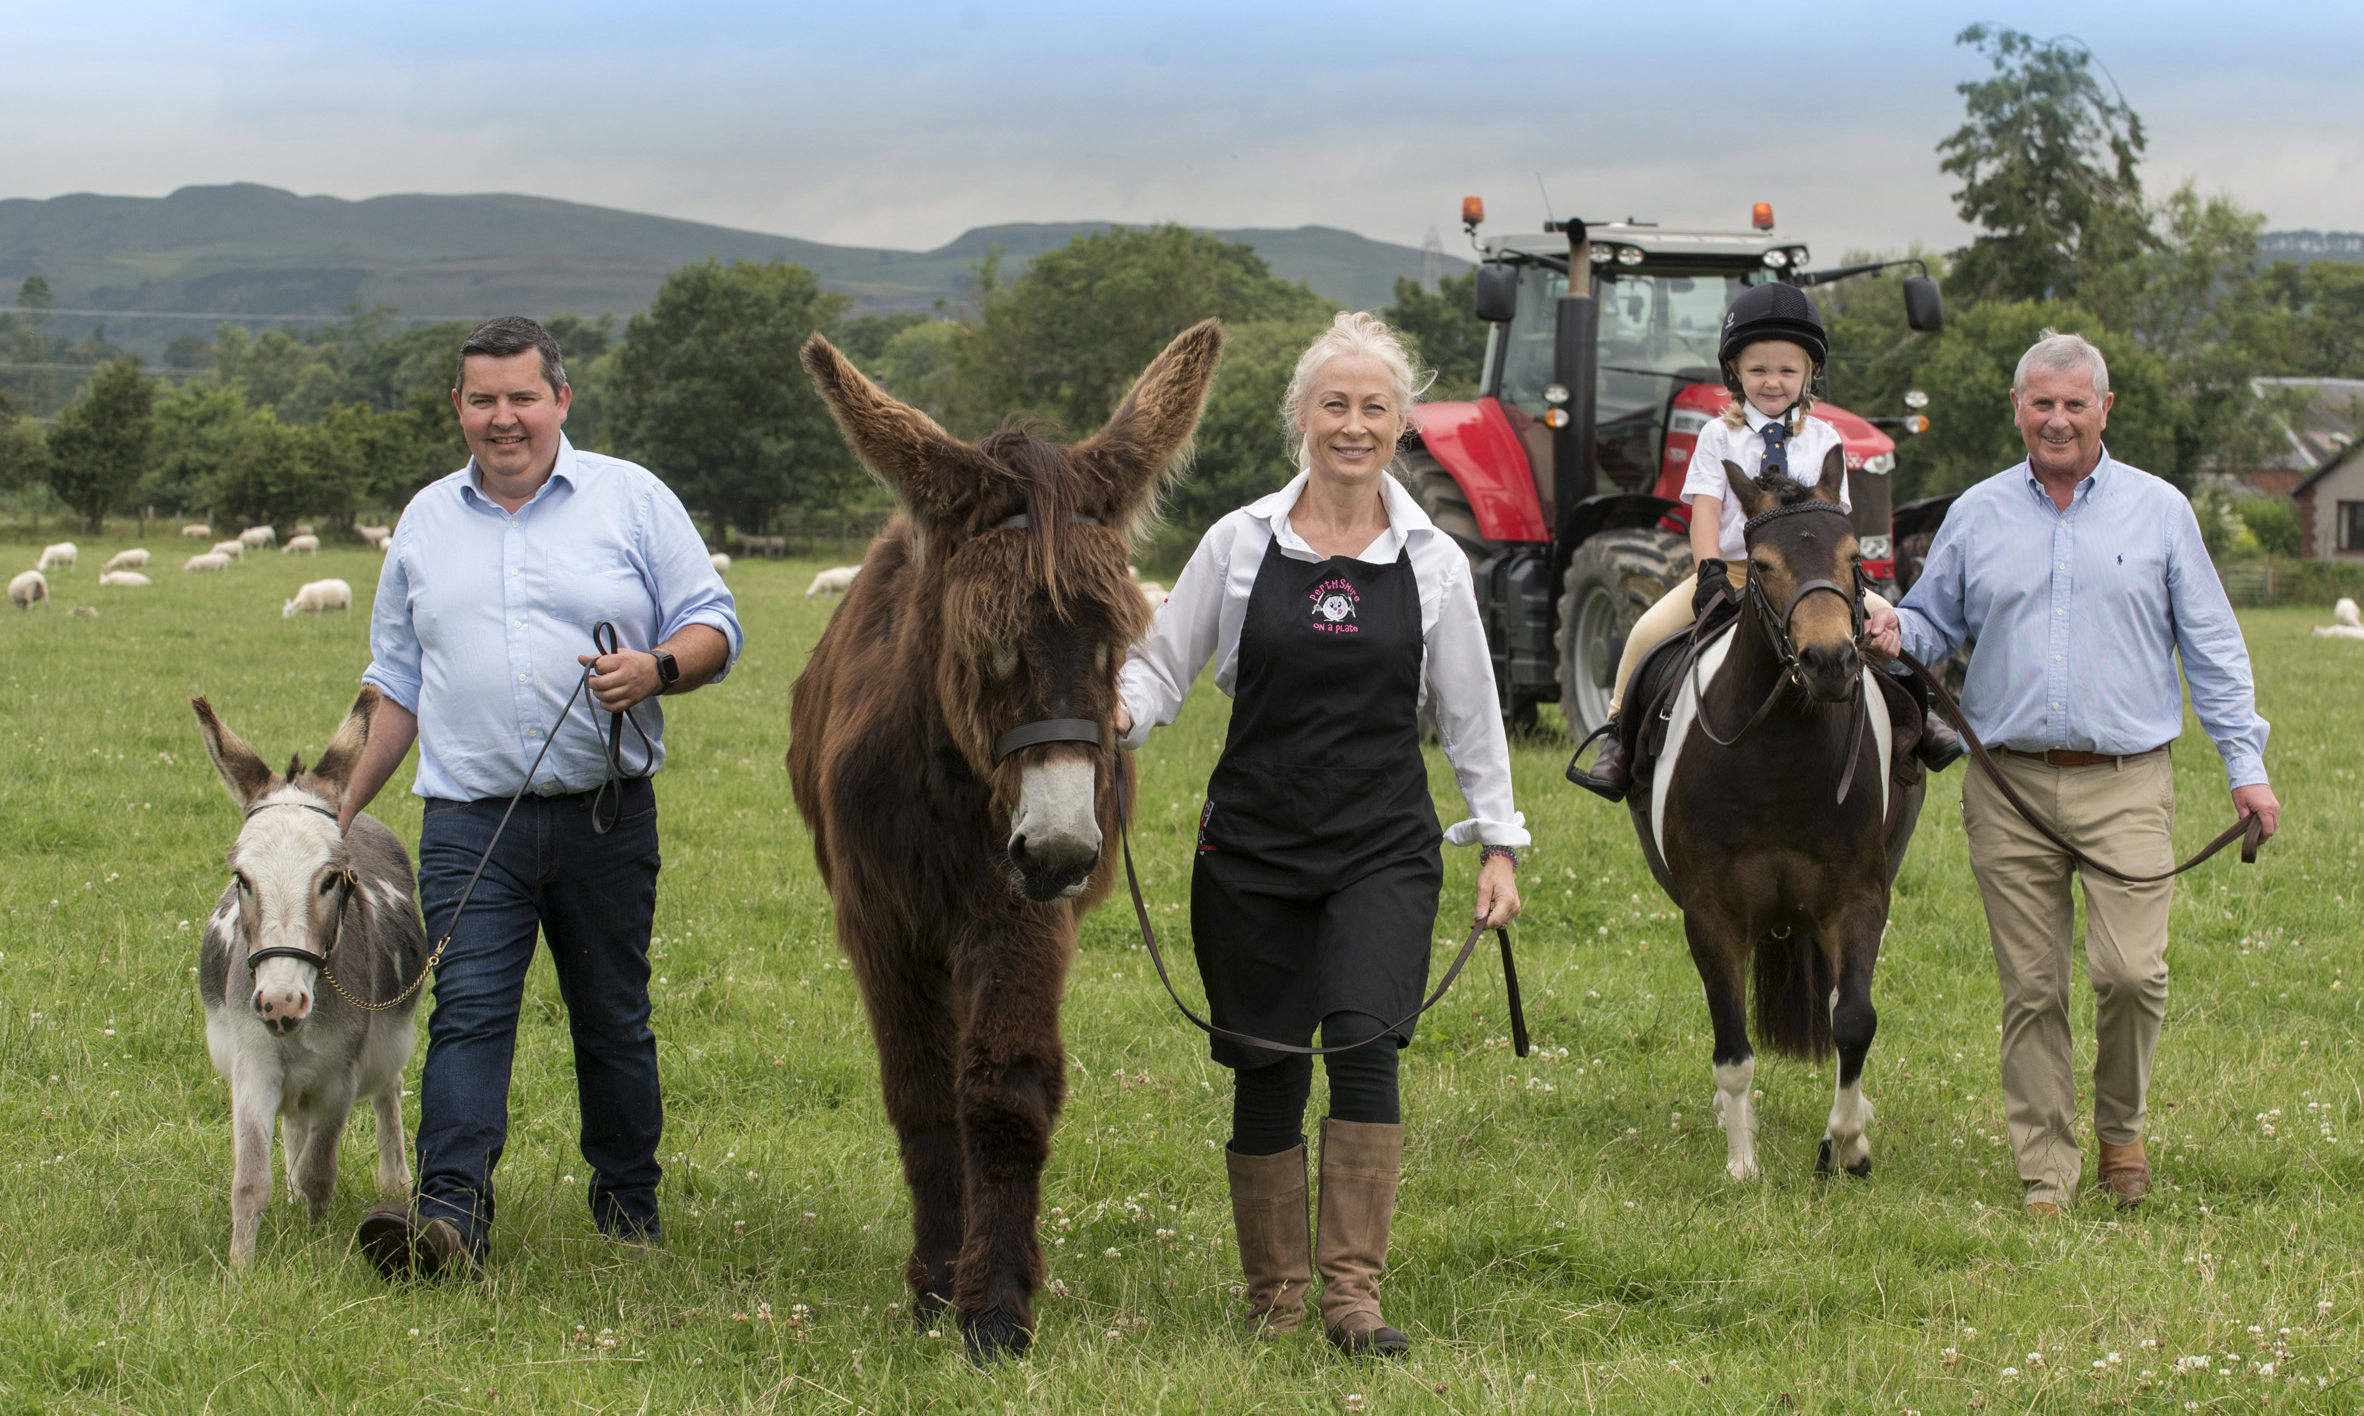 Chairman Donald McDiarmid with donkey Goose and secretary Neil Forbes, Lottie Pitcaithly (4) with her pony Dolly and Vicki Unite with giant infant donkey Hettie.